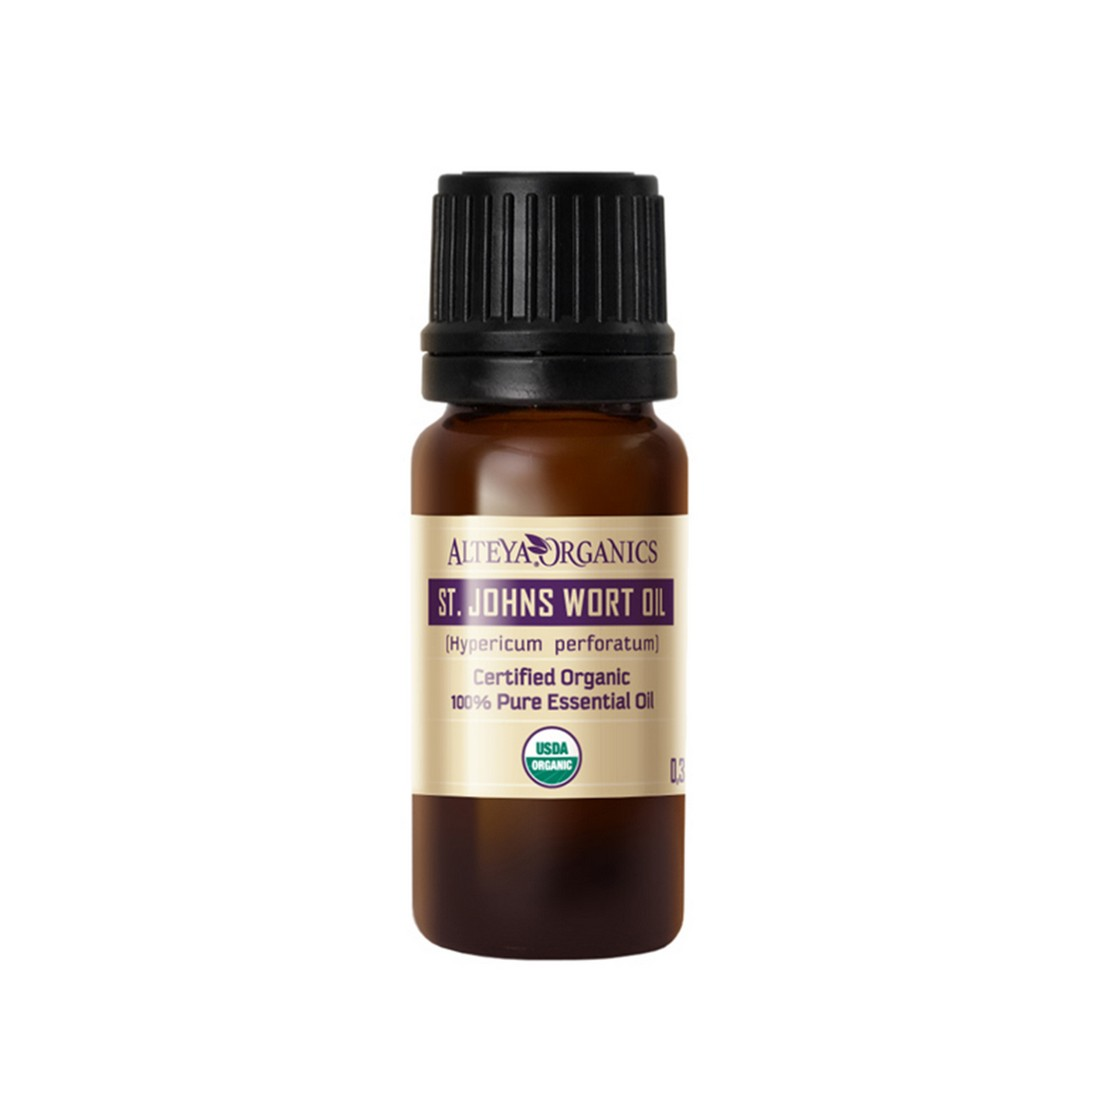 Bio organic St. John's Wort essential oil Alteya Organics 10 ml.